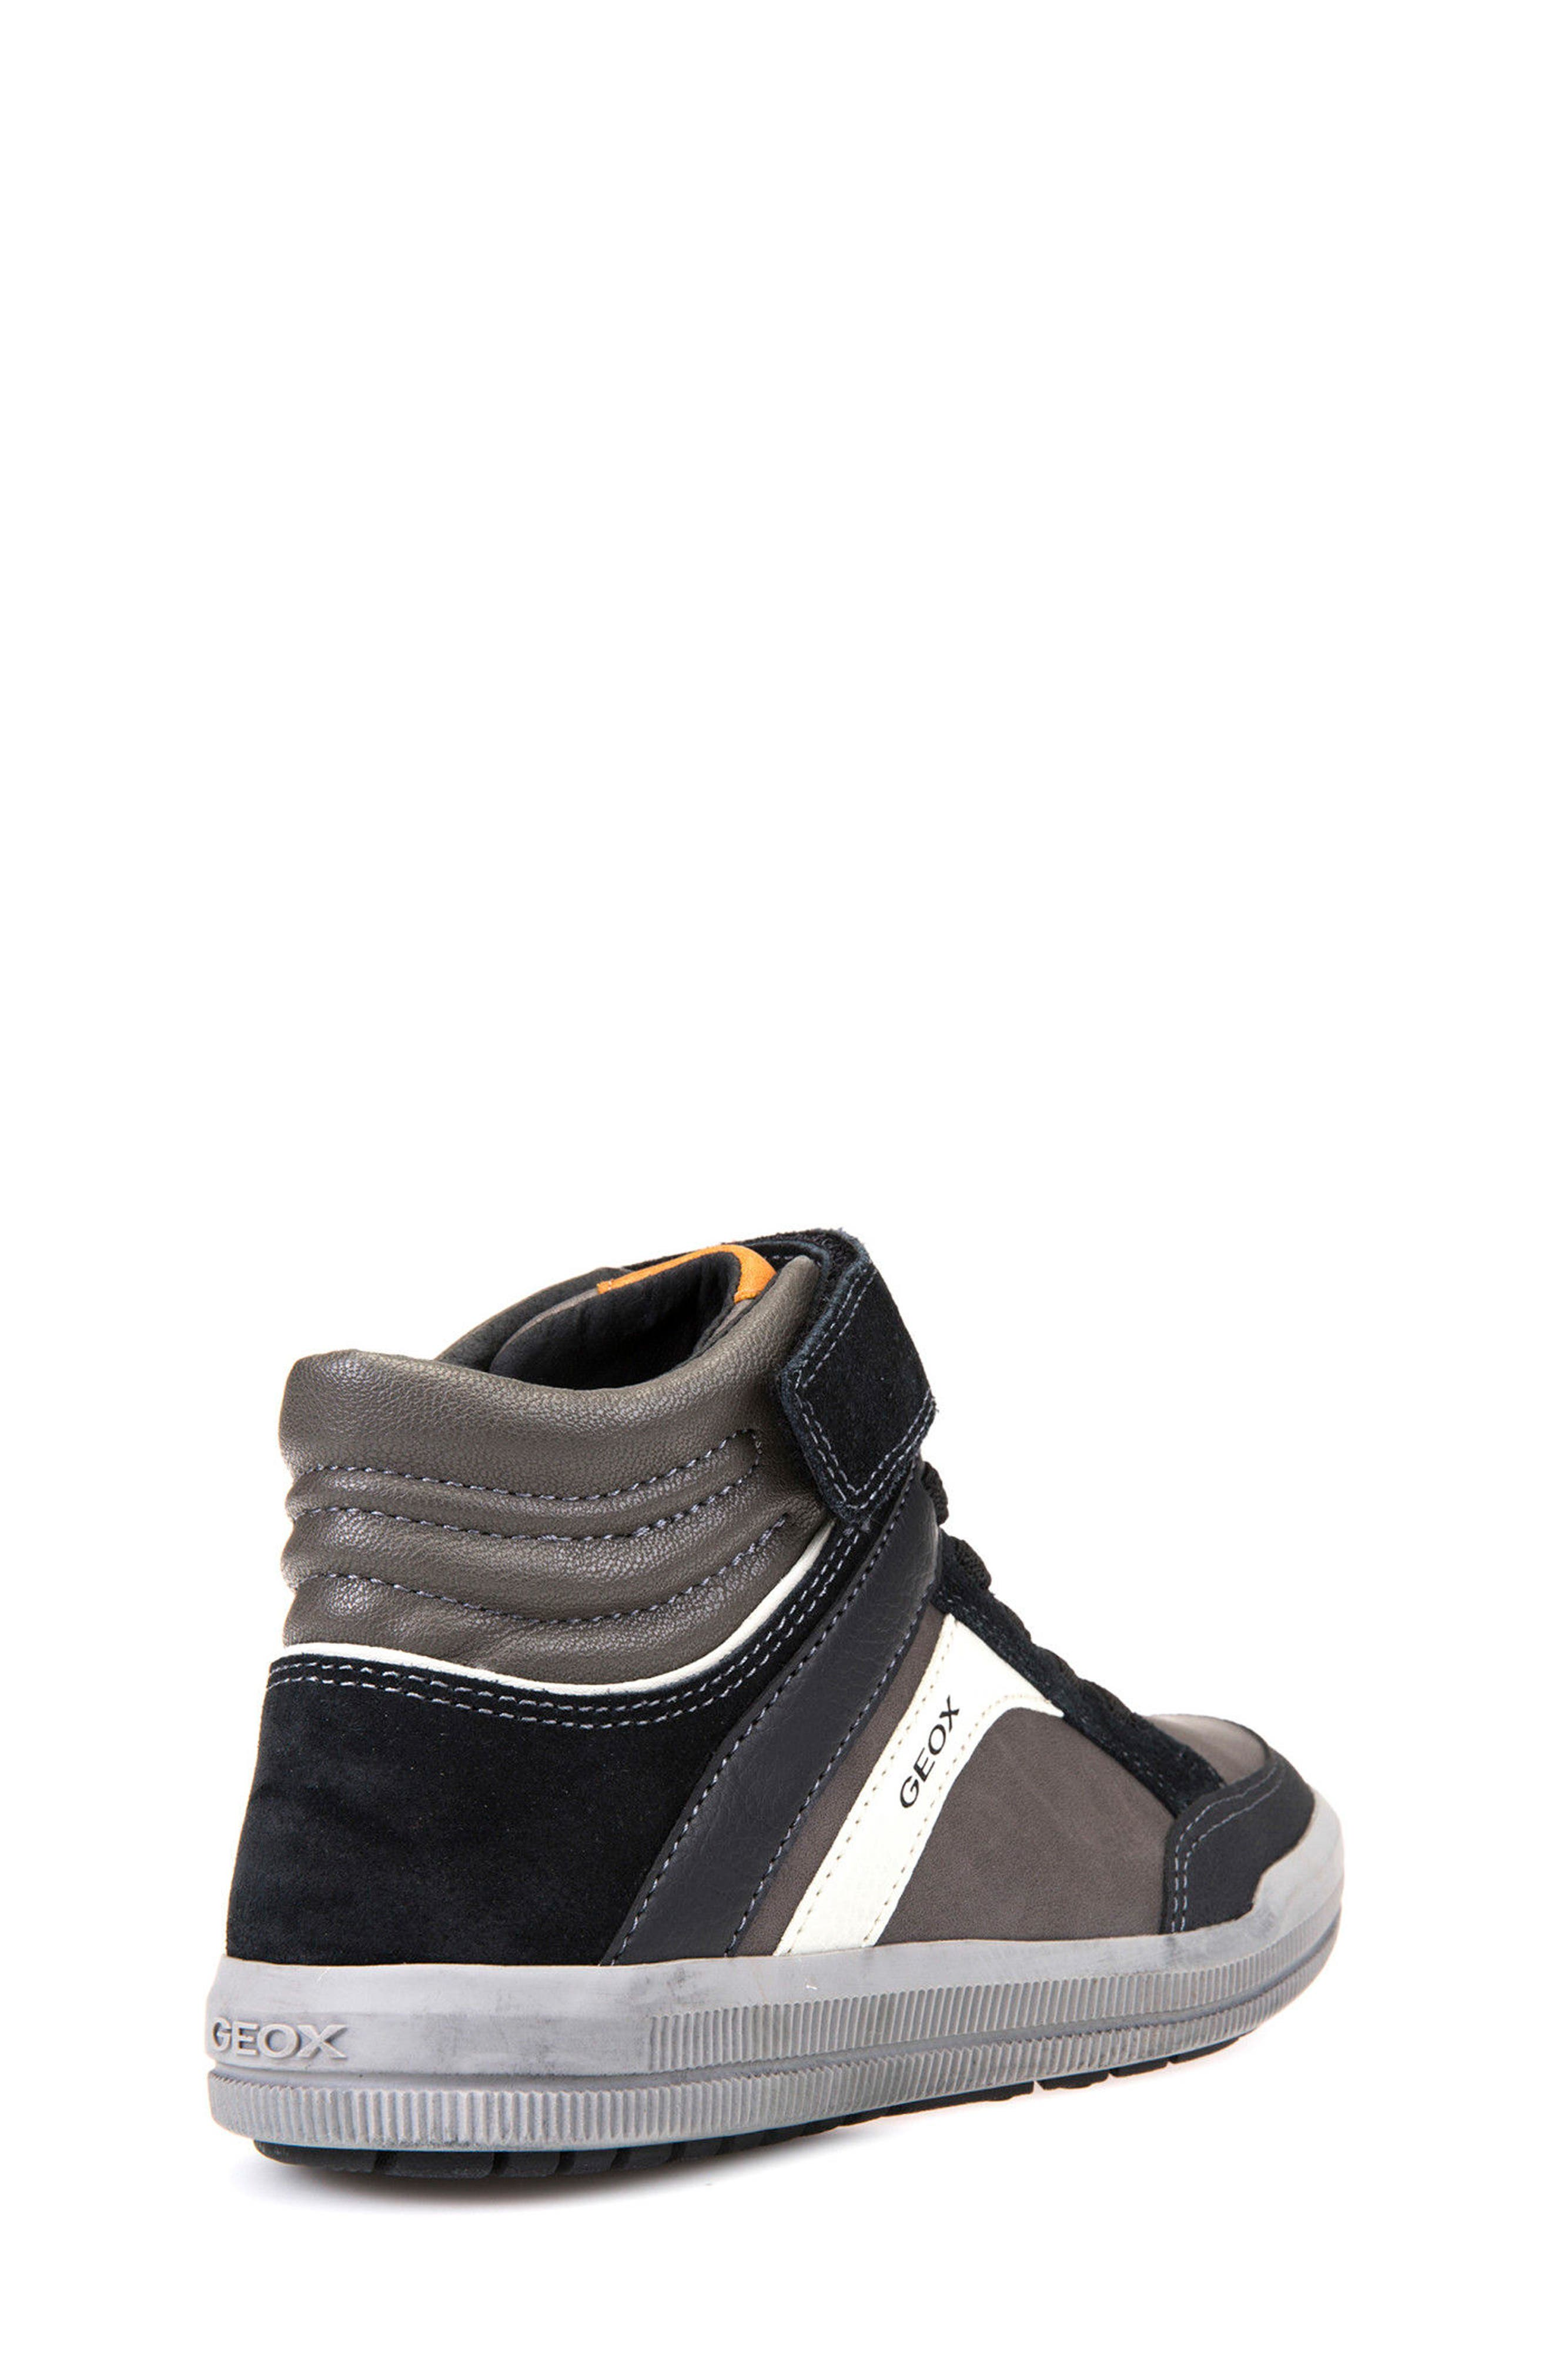 Arzach Mid Top Sneaker,                             Alternate thumbnail 2, color,                             001